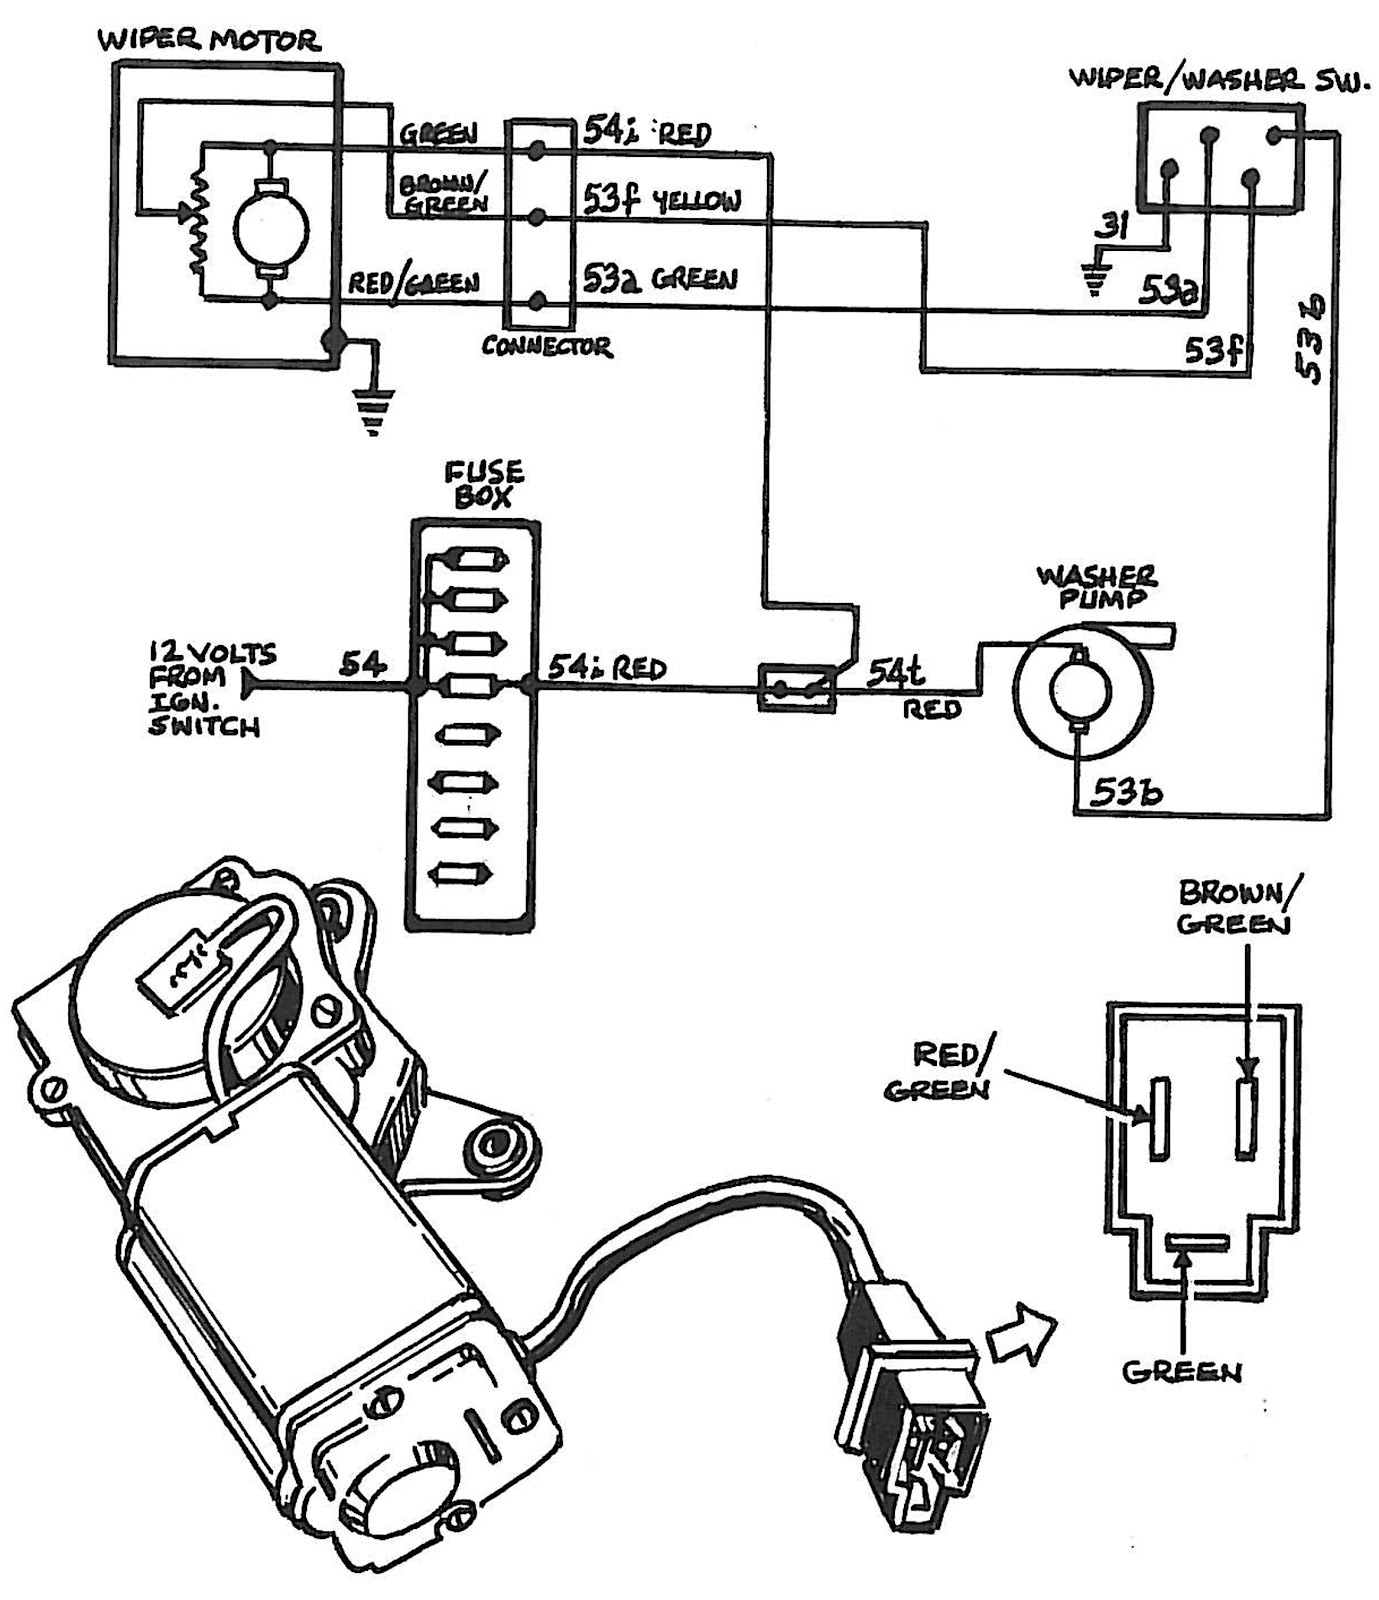 1969 Corvette Horn Relay Location additionally Trailblazer Fuel Gauge Wiring Diagram also 2002 Chrysler Sebring Engine Diagram besides Nissan Altima Ke Switch Location as well Catalog3. on 1998 vw beetle wiring diagram